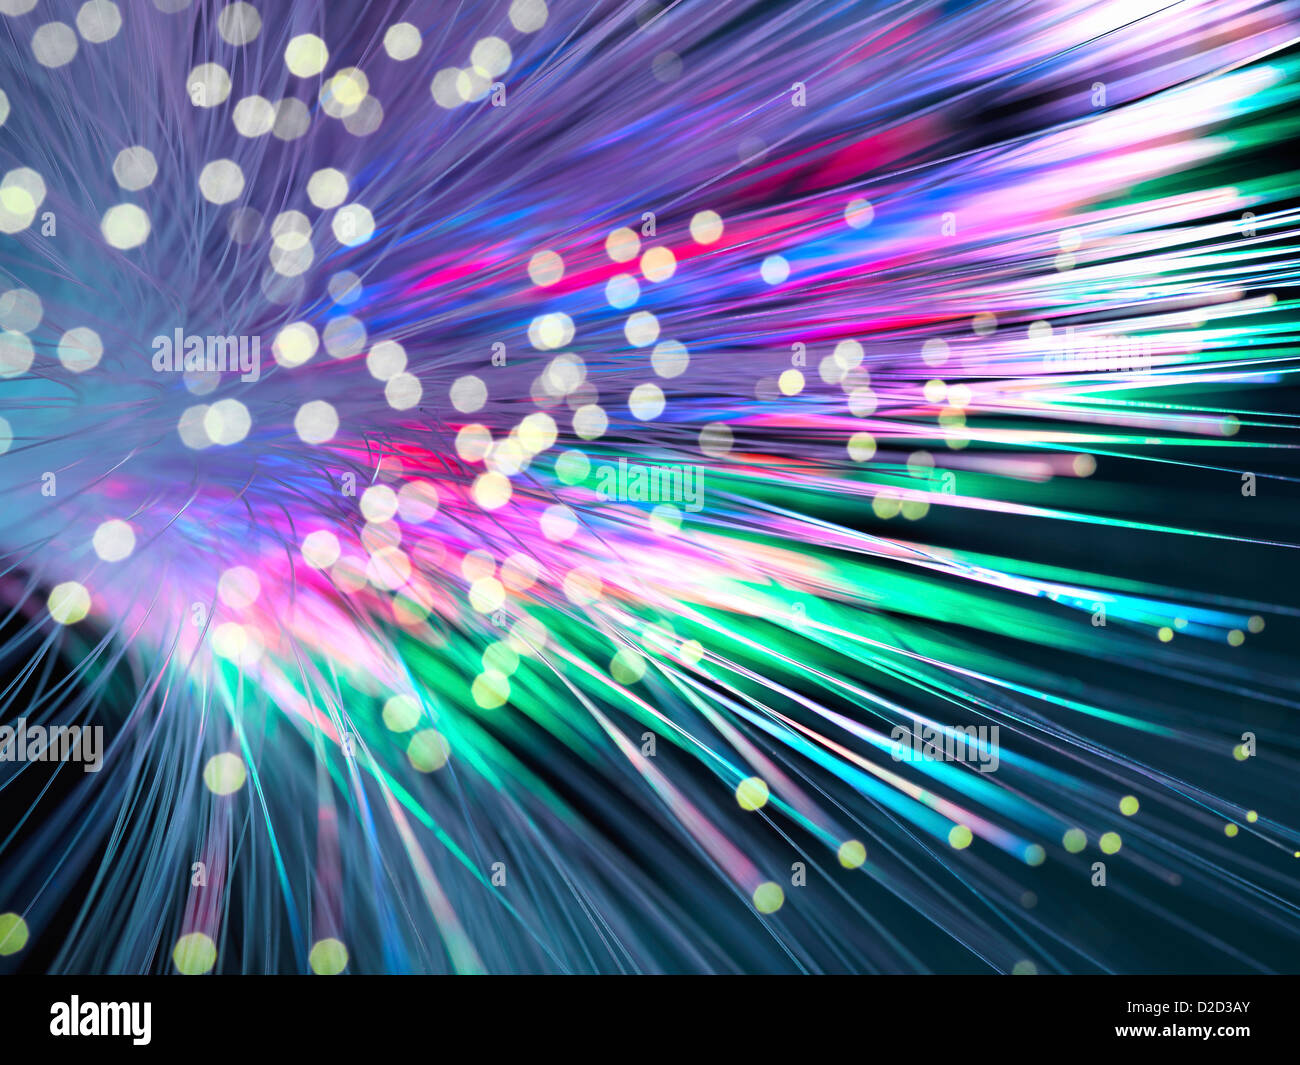 Optical fibres emitting light Optical fibres are used in telecommunications to transmit data at high speed - Stock Image